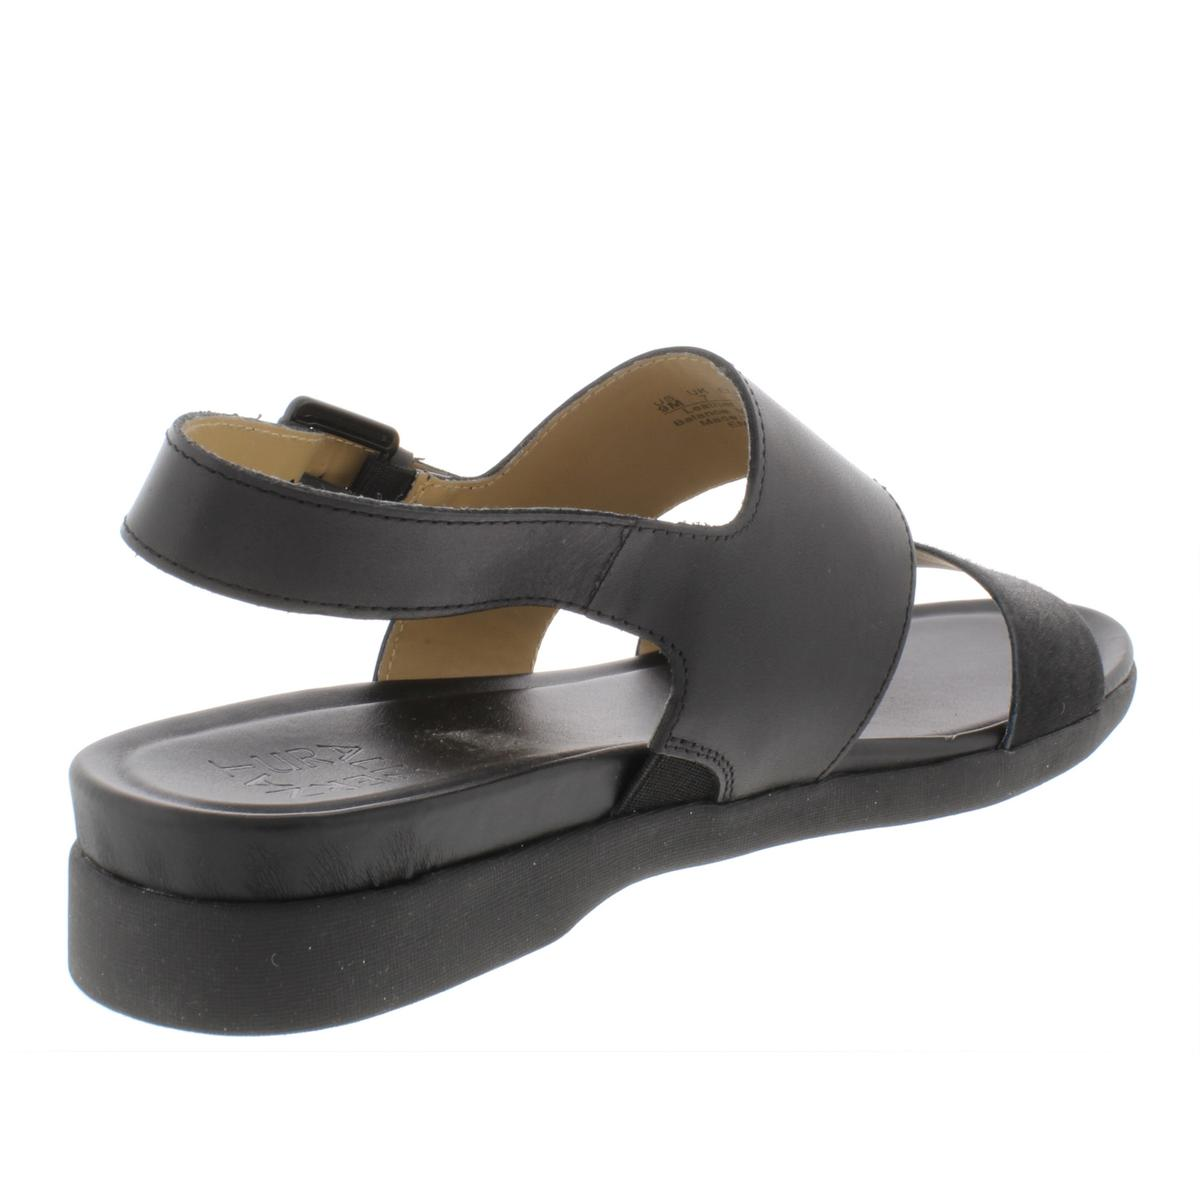 Naturalizer-Womens-Emory-Leather-Demi-Wedge-Casual-Strap-Sandals-Shoes-BHFO-6523 thumbnail 4